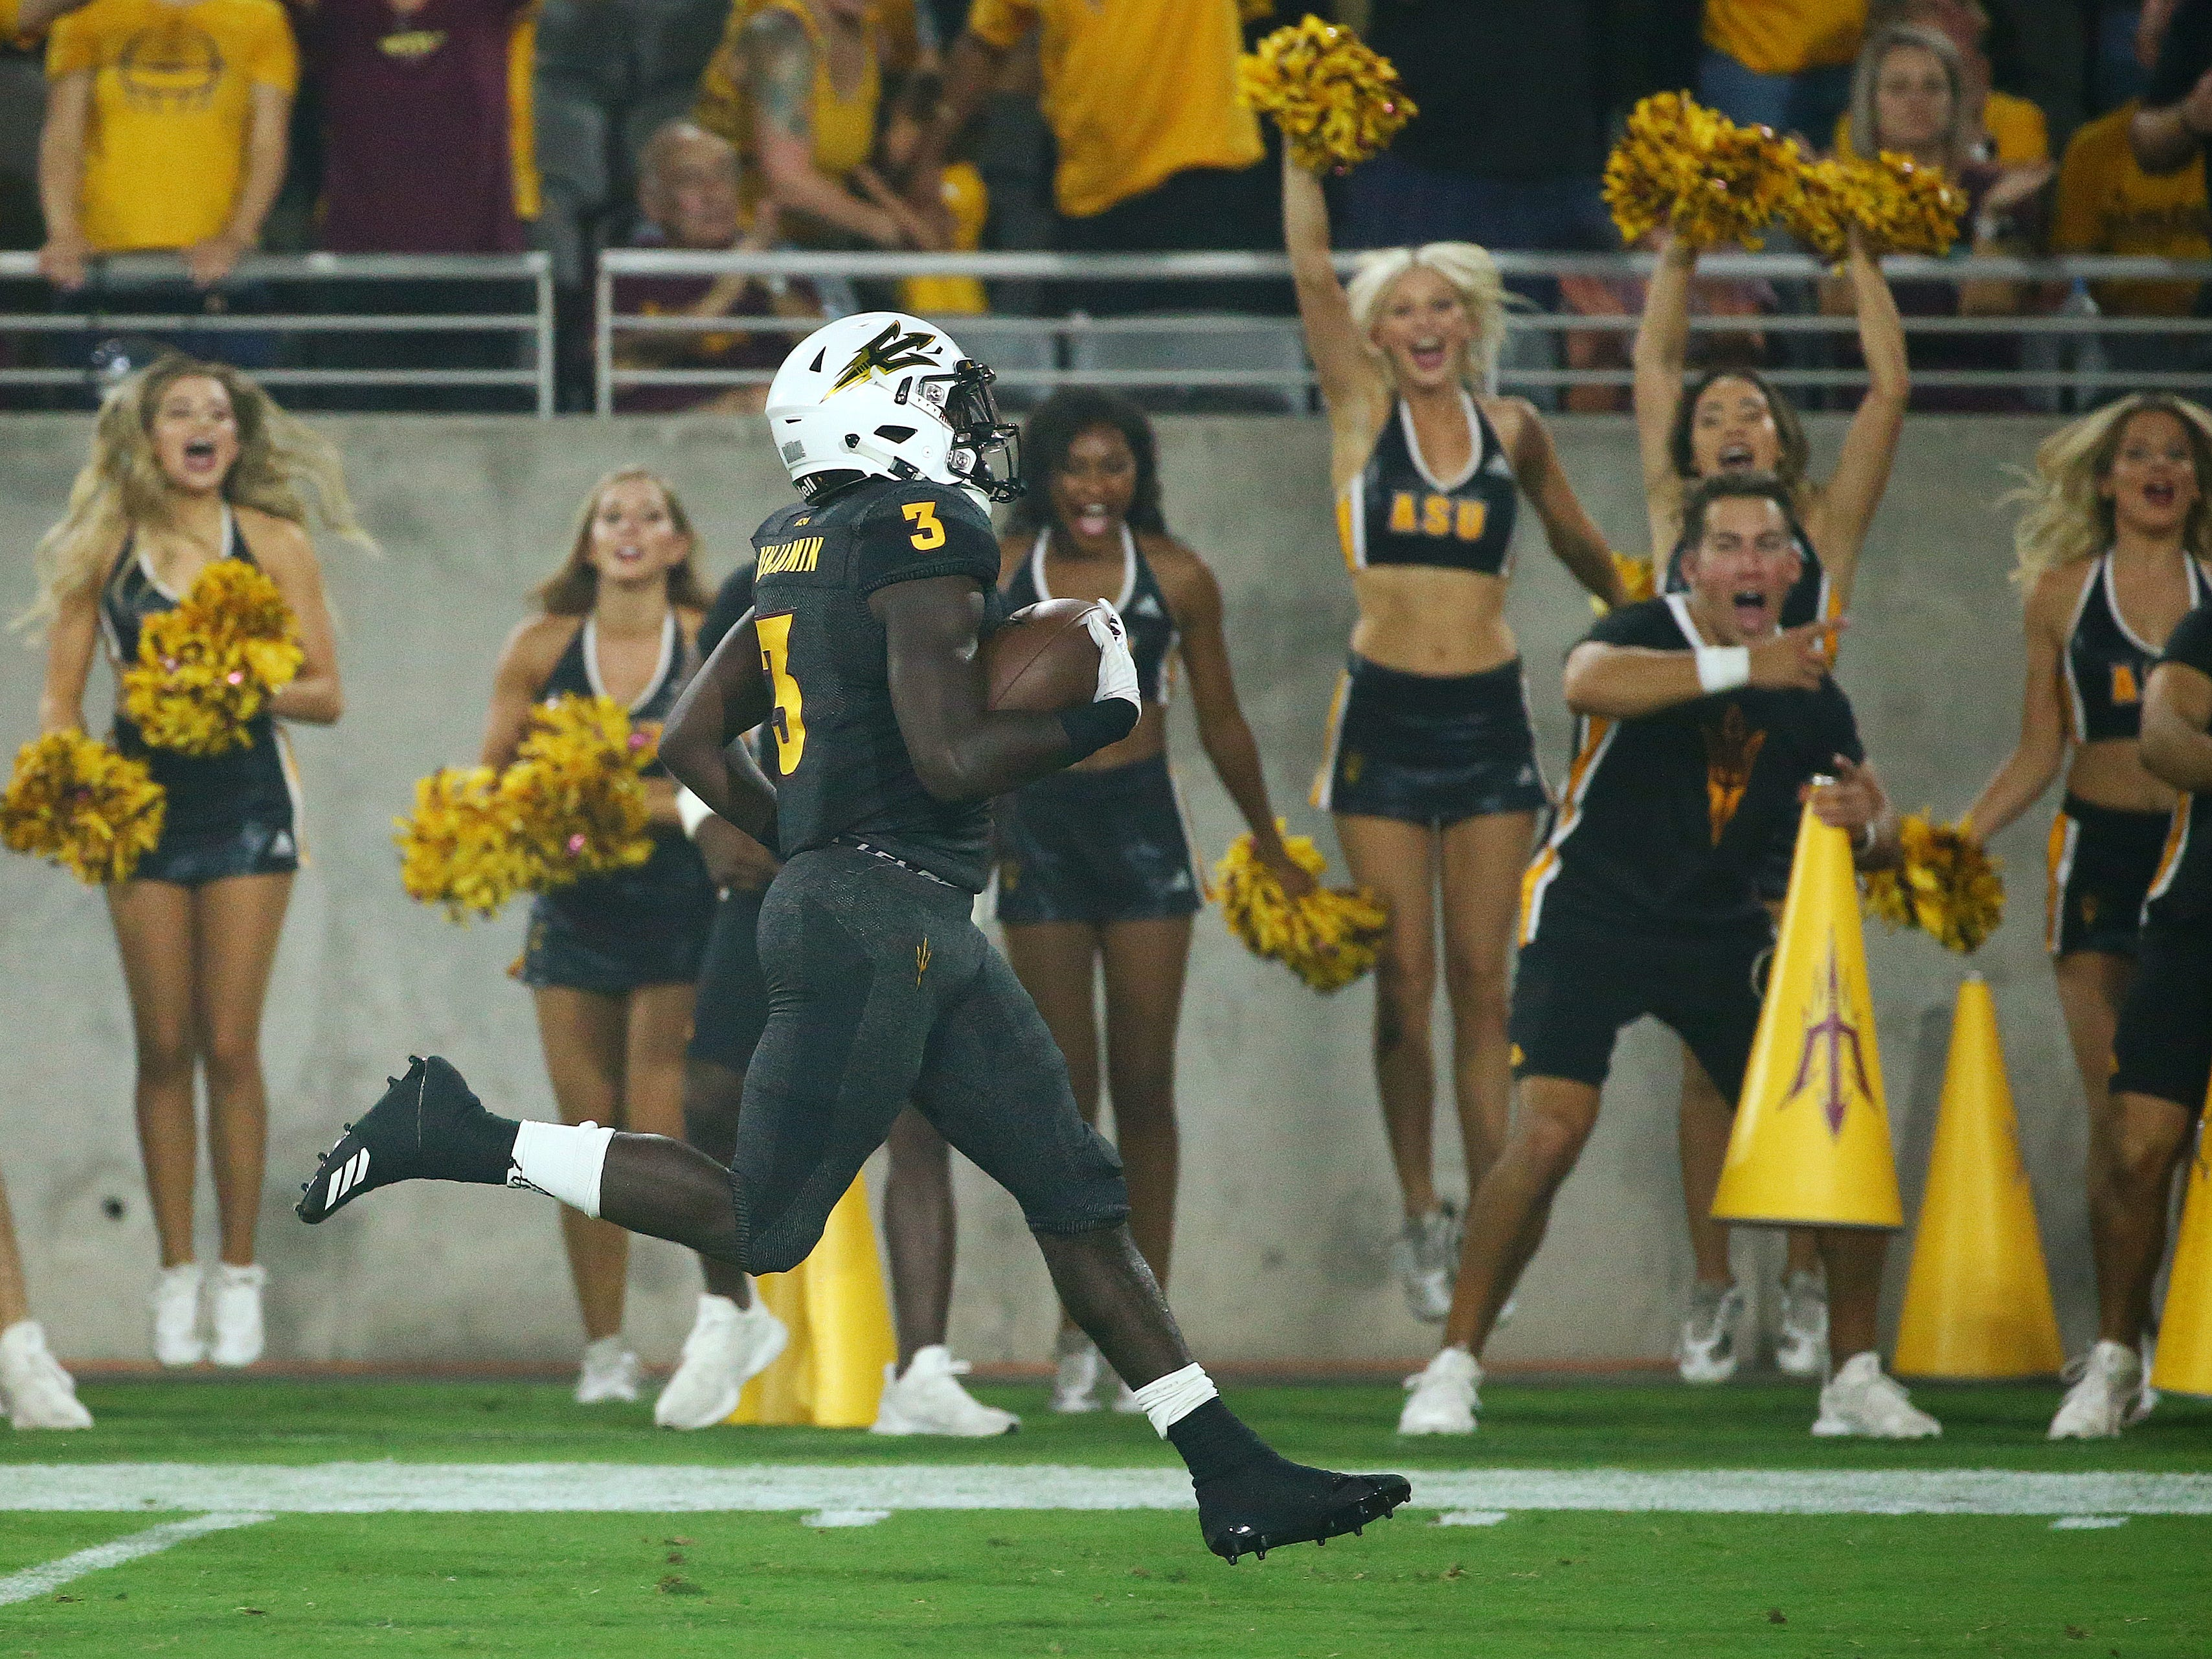 Arizona State running back Eno Benjamin runs for a touchdown against Oregon State in the first half on Sep. 29, 2018, at Sun Devil Stadium.